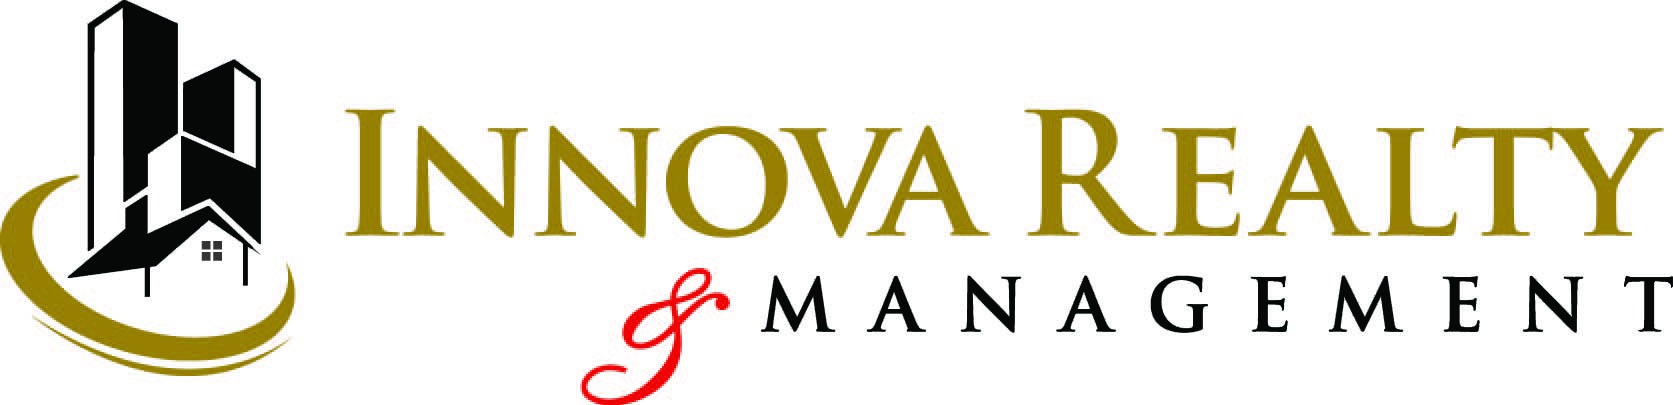 Innova Realty & Management logo